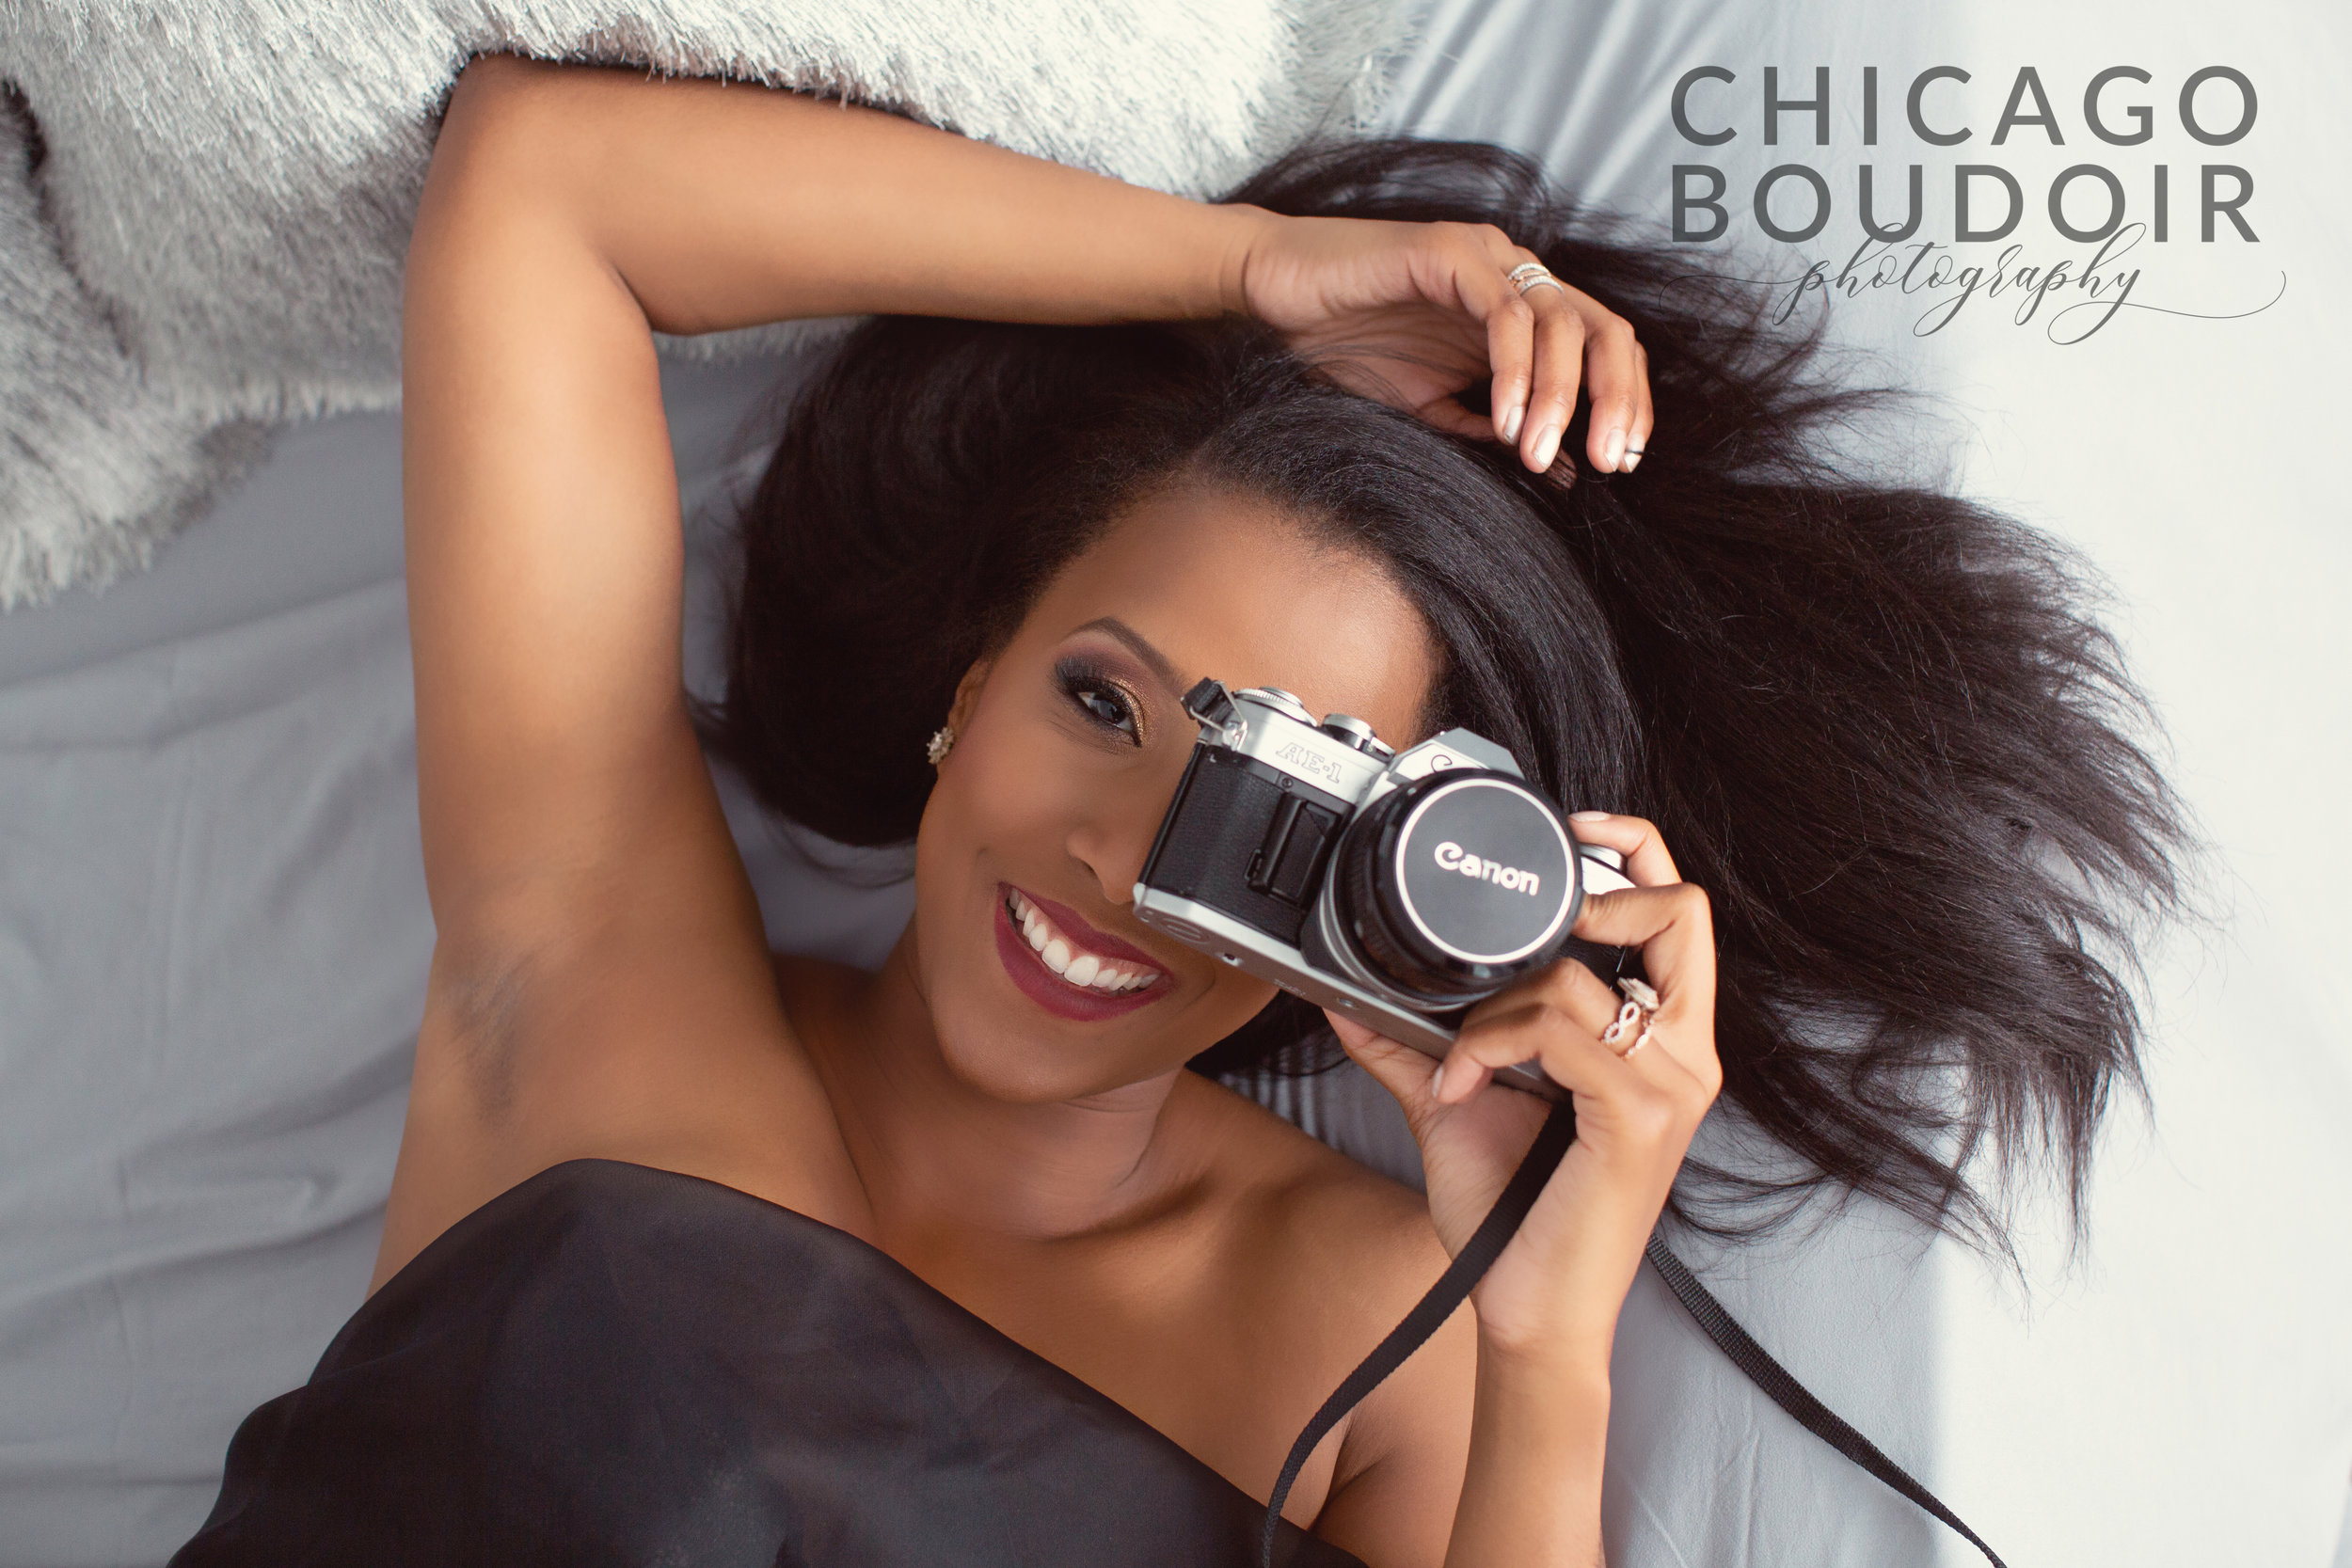 vintage camera chicago boudoir photography african american woman